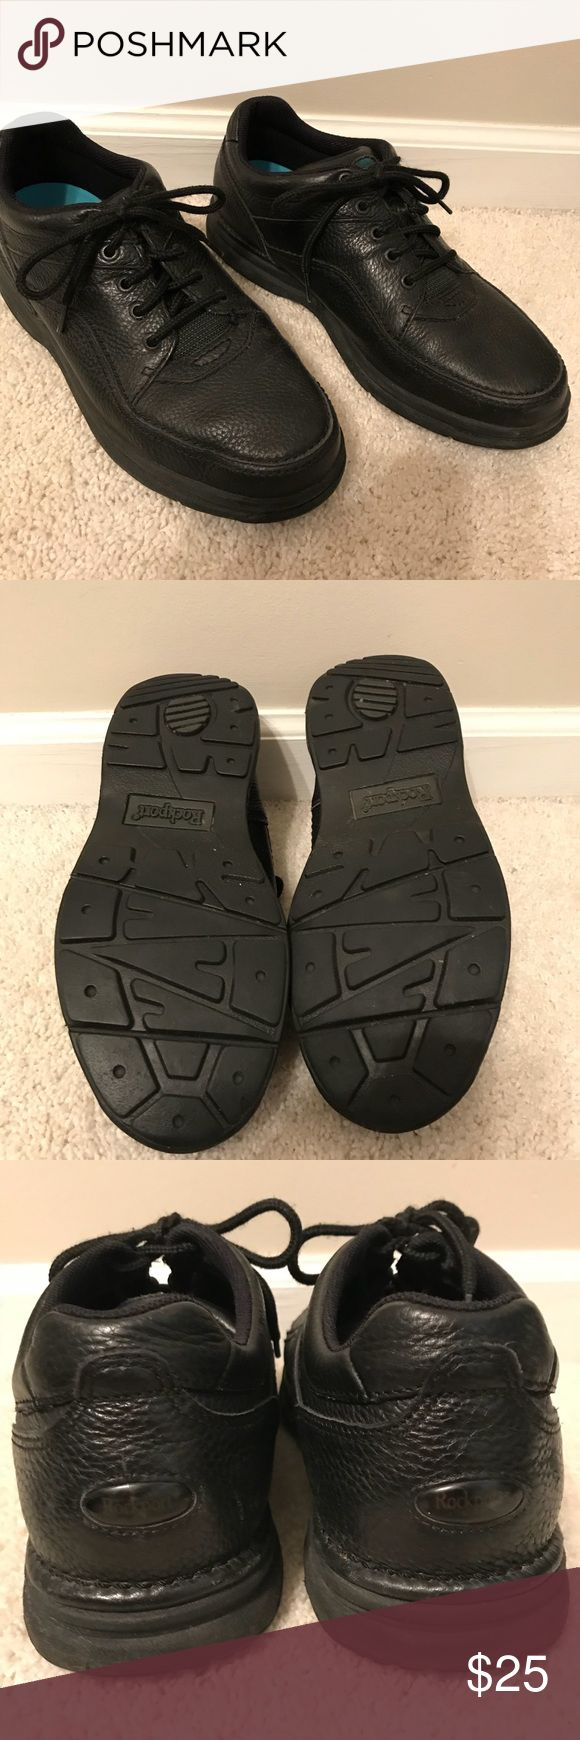 Men's Rockport shoes Men's leather upper black size 10 1/2 Rockport brand shoes- like new condition. Smoke free/ pet free environment. Rockport Shoes Athletic Shoes